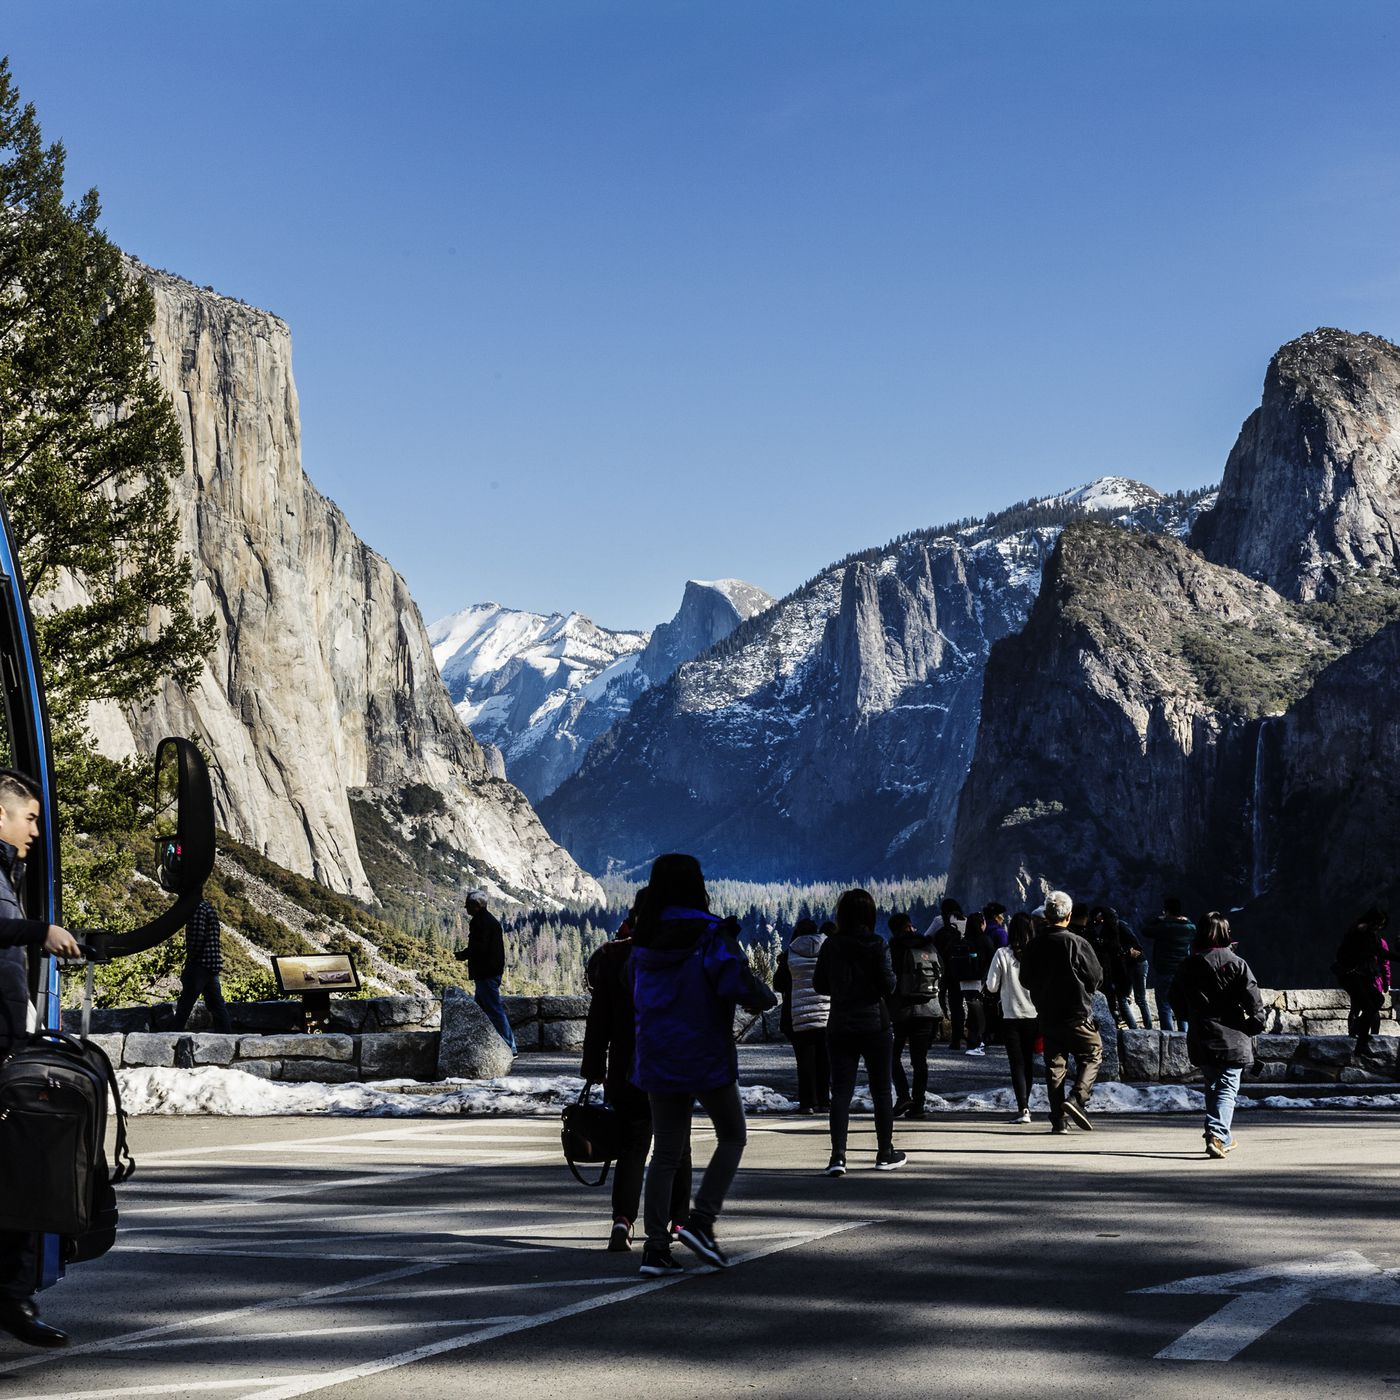 vox.com - Tracy Barbutes - I live by Yosemite National Park. Here's what's been happening since the shutdown.